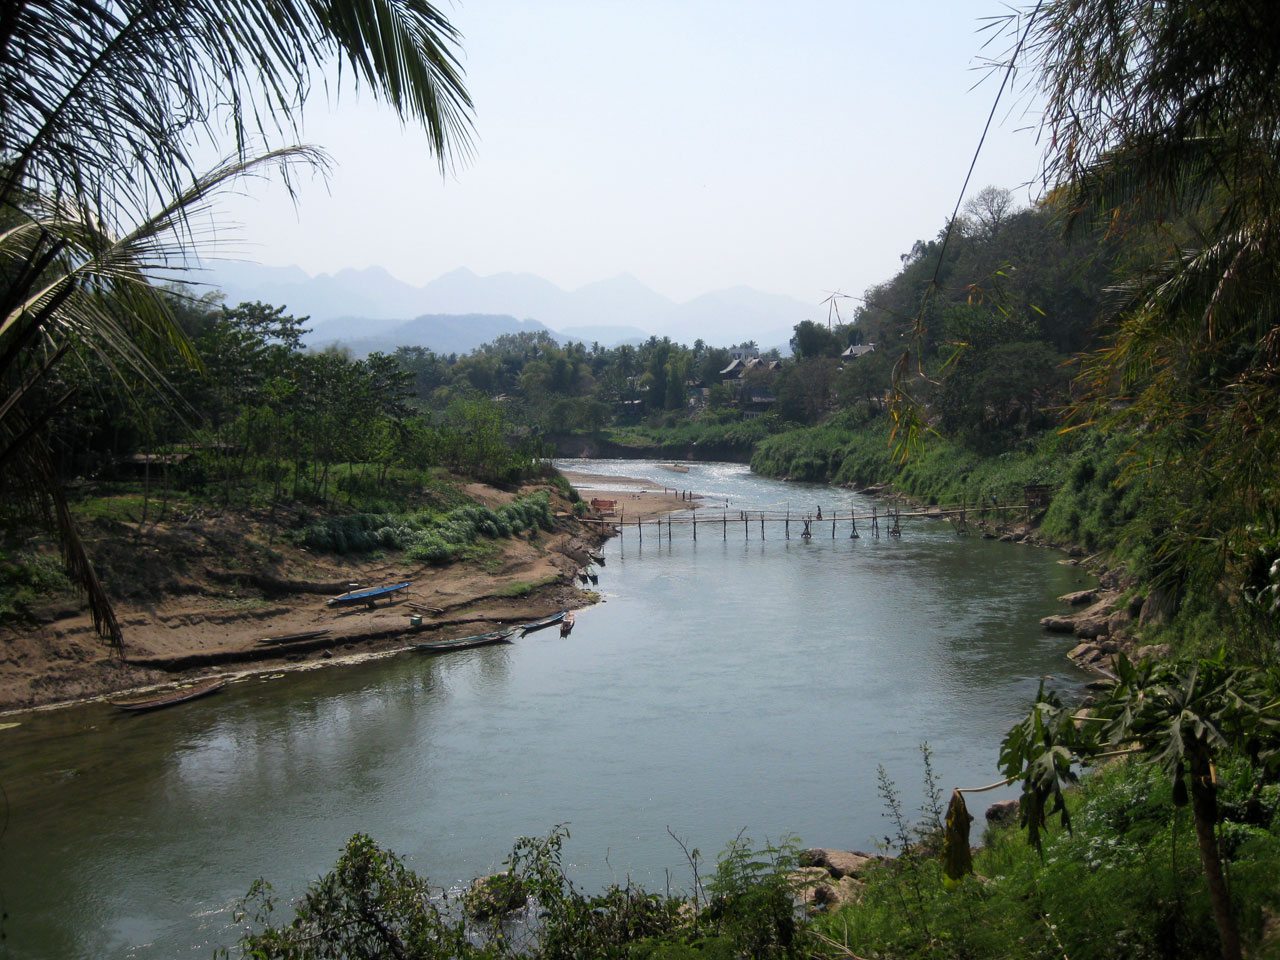 The Nam Khan river, Luang Prabang, Laos